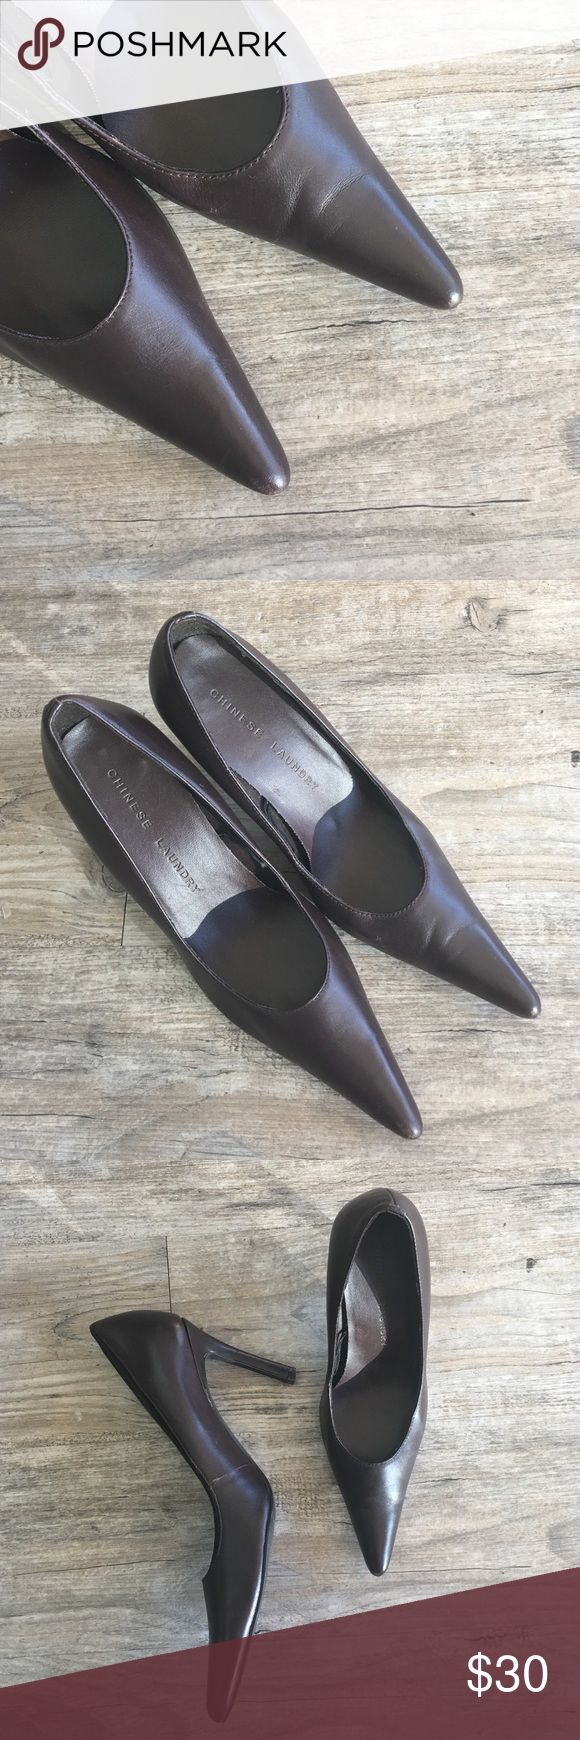 "CHINESE LAUNDRY Genuine Leather Heels Adorable and comfortable. Pointy toe. Genuine leather and soft. A little wear but still in beautiful shape. 3.5"" heel. Chinese Laundry Shoes"